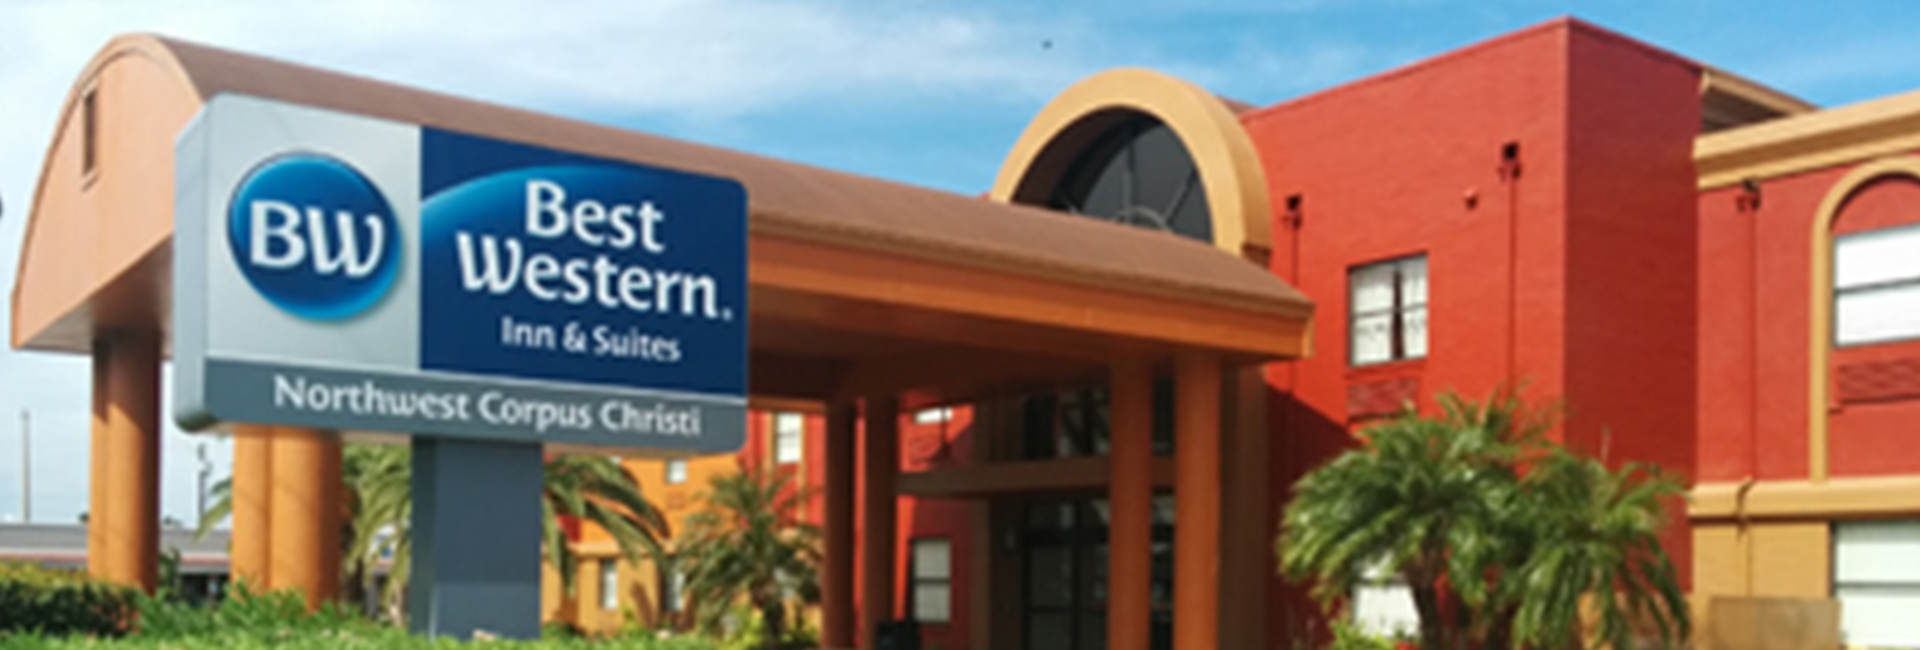 BEST WESTERN NORTHWEST CORPUS CHRISTI INN & SUITES, TEXAS